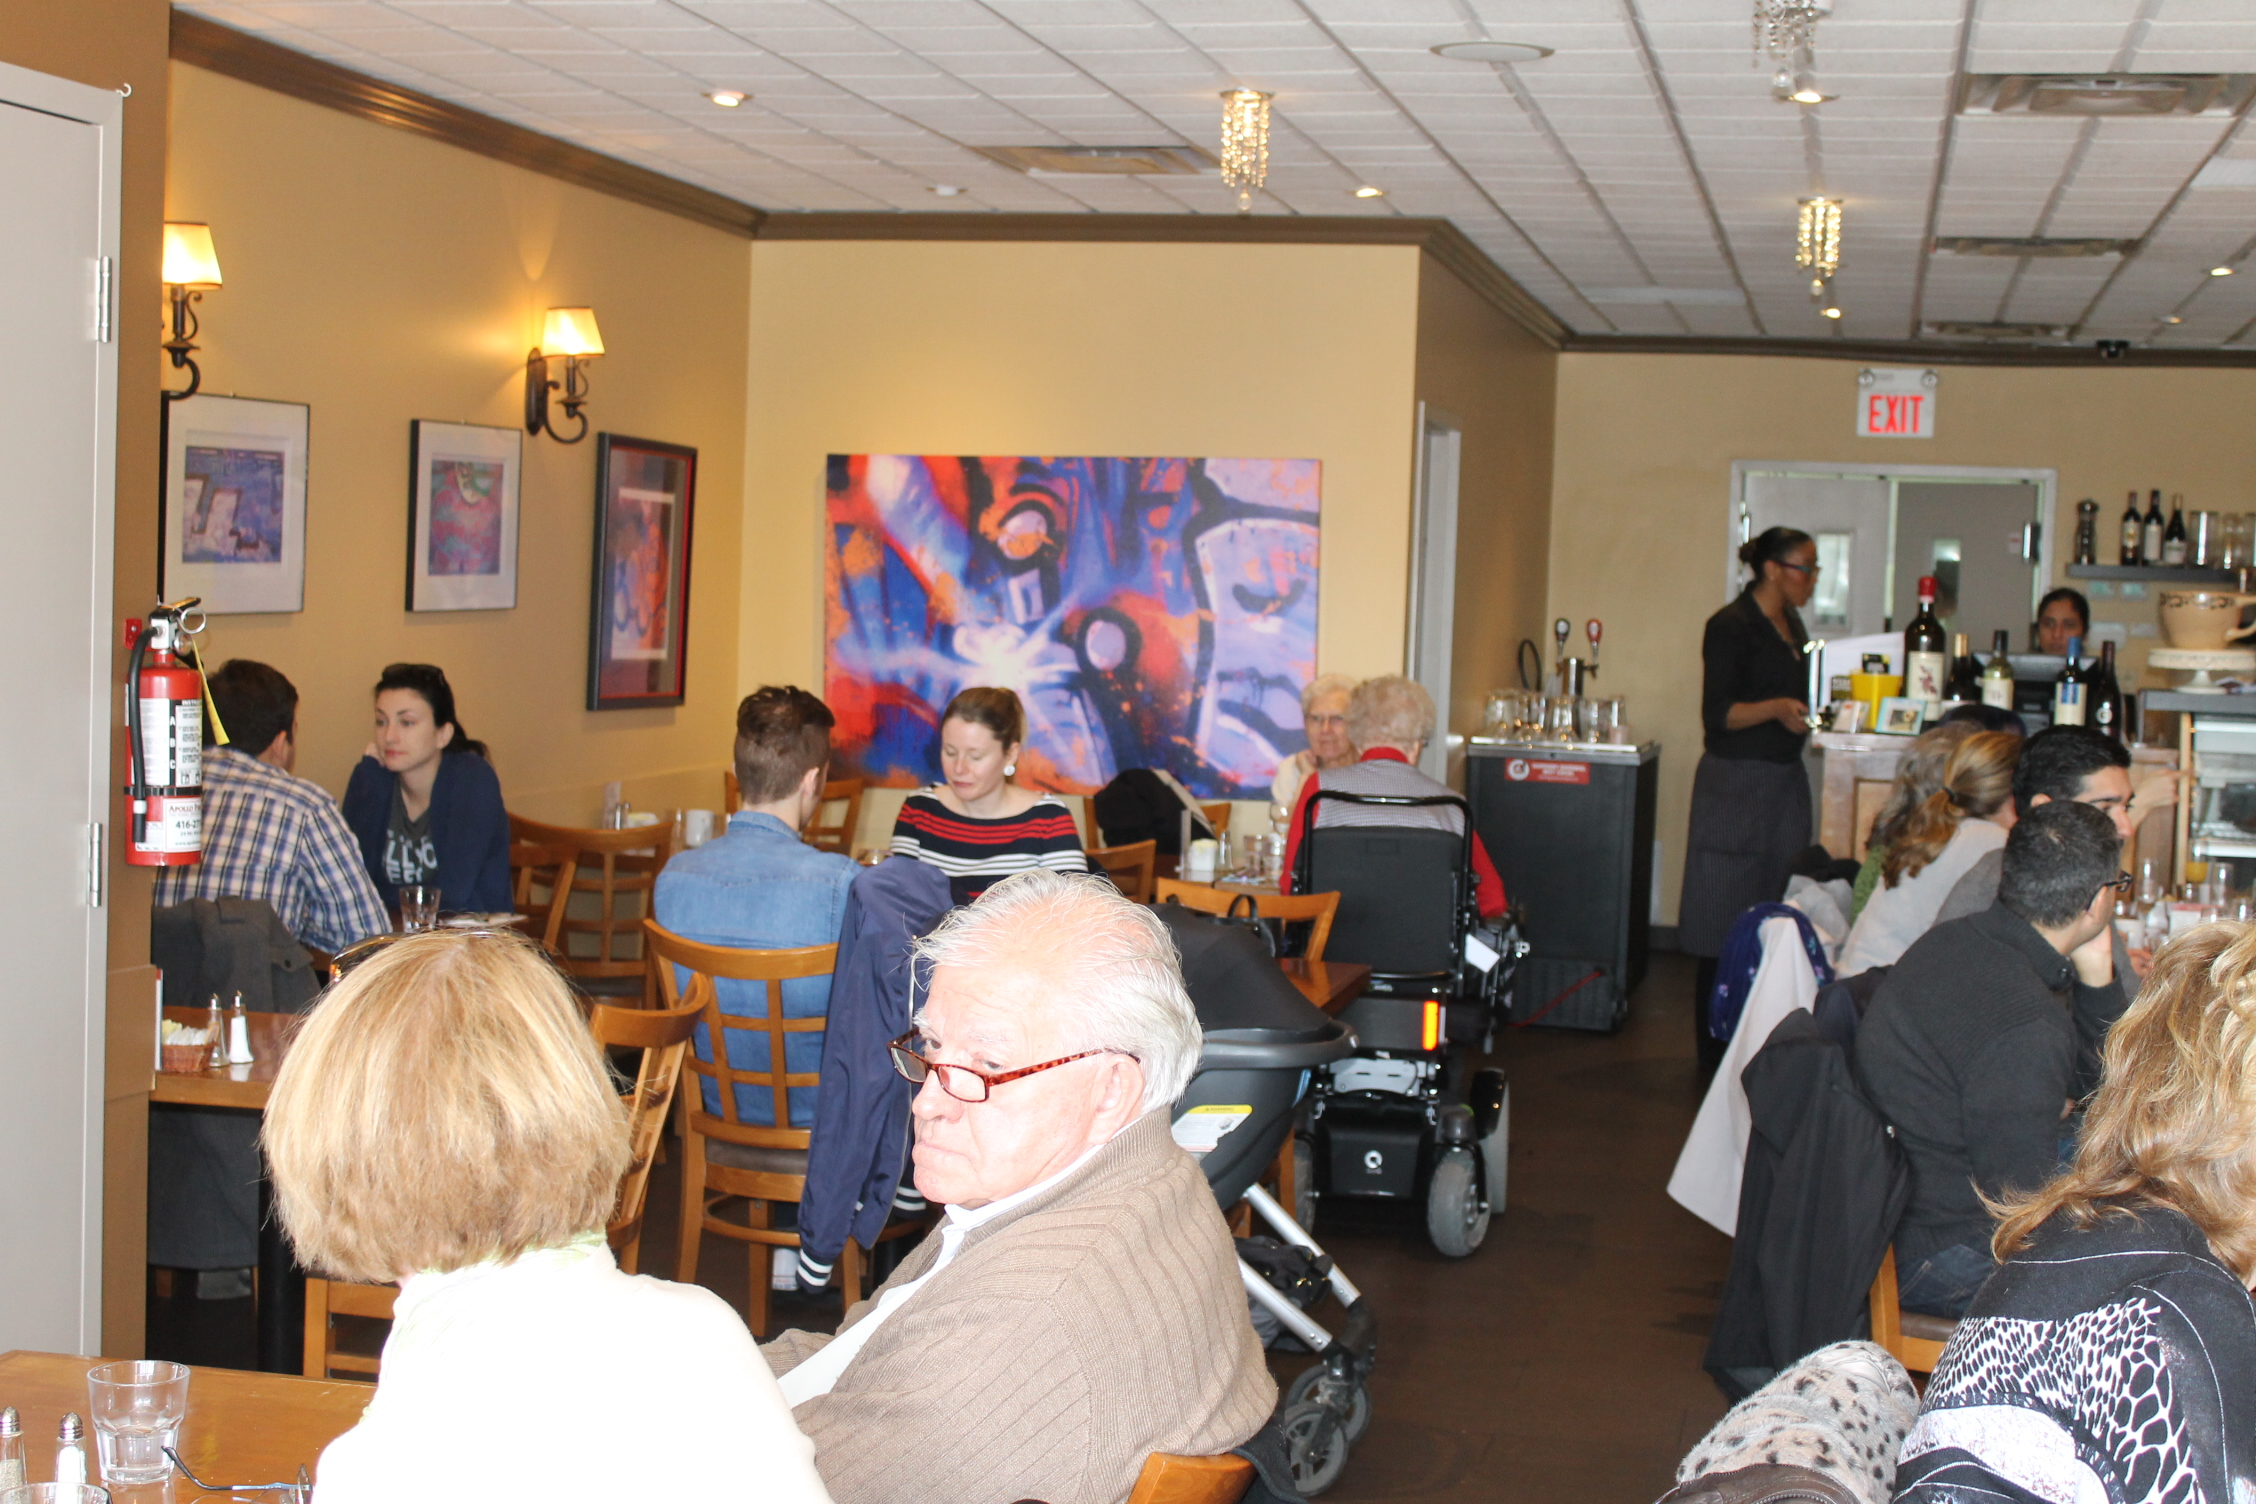 Picture of accessible interior of restaurant. Woman in power wheelchair at one table.